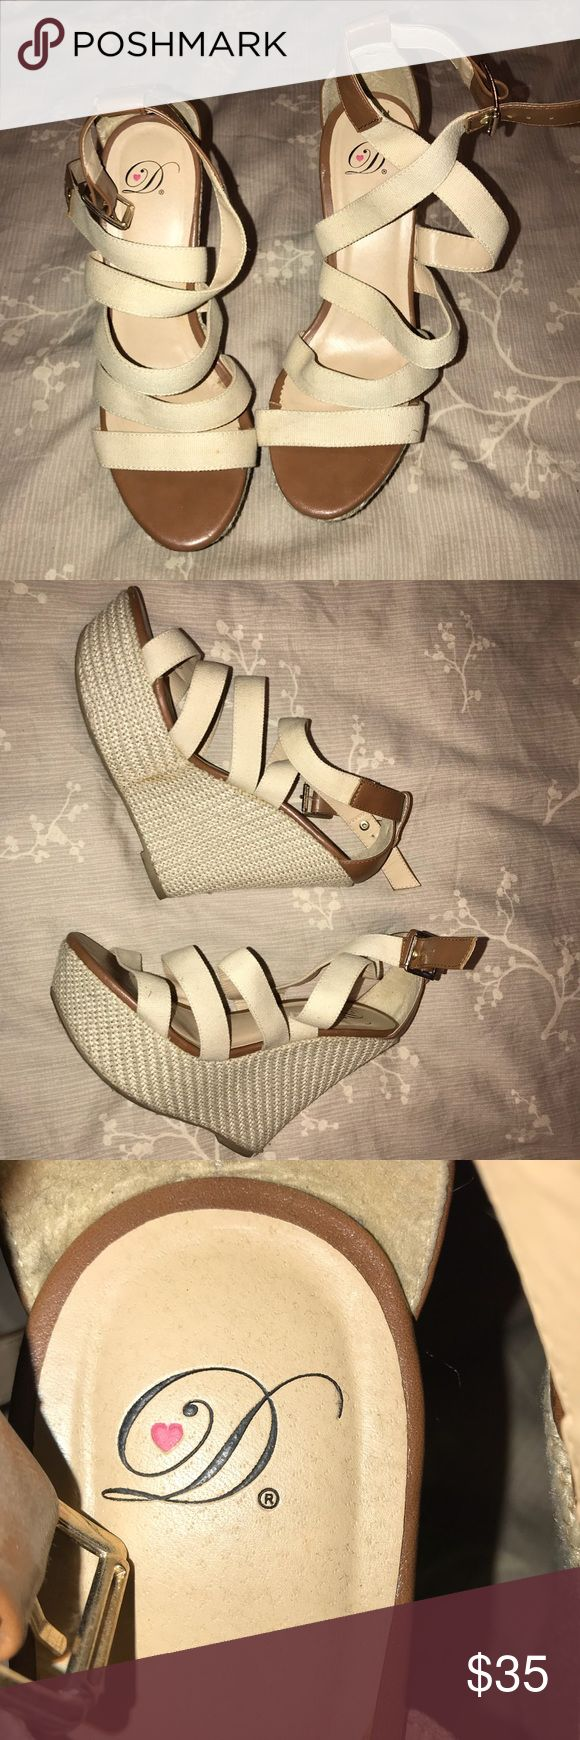 Cream Wedges Cream wedges. Size 9. Like new.   ————  🚭All items are from a smoke free home.  ☝🏼 Item is as described, feel free to ask questions.  📦 I am a fast shipper.  💰I love bundles and discounts. Feel free to make an offer.  😍Love this item? Shop my closet! 💖 Thanks for shopping! Wild Diva Shoes Wedges